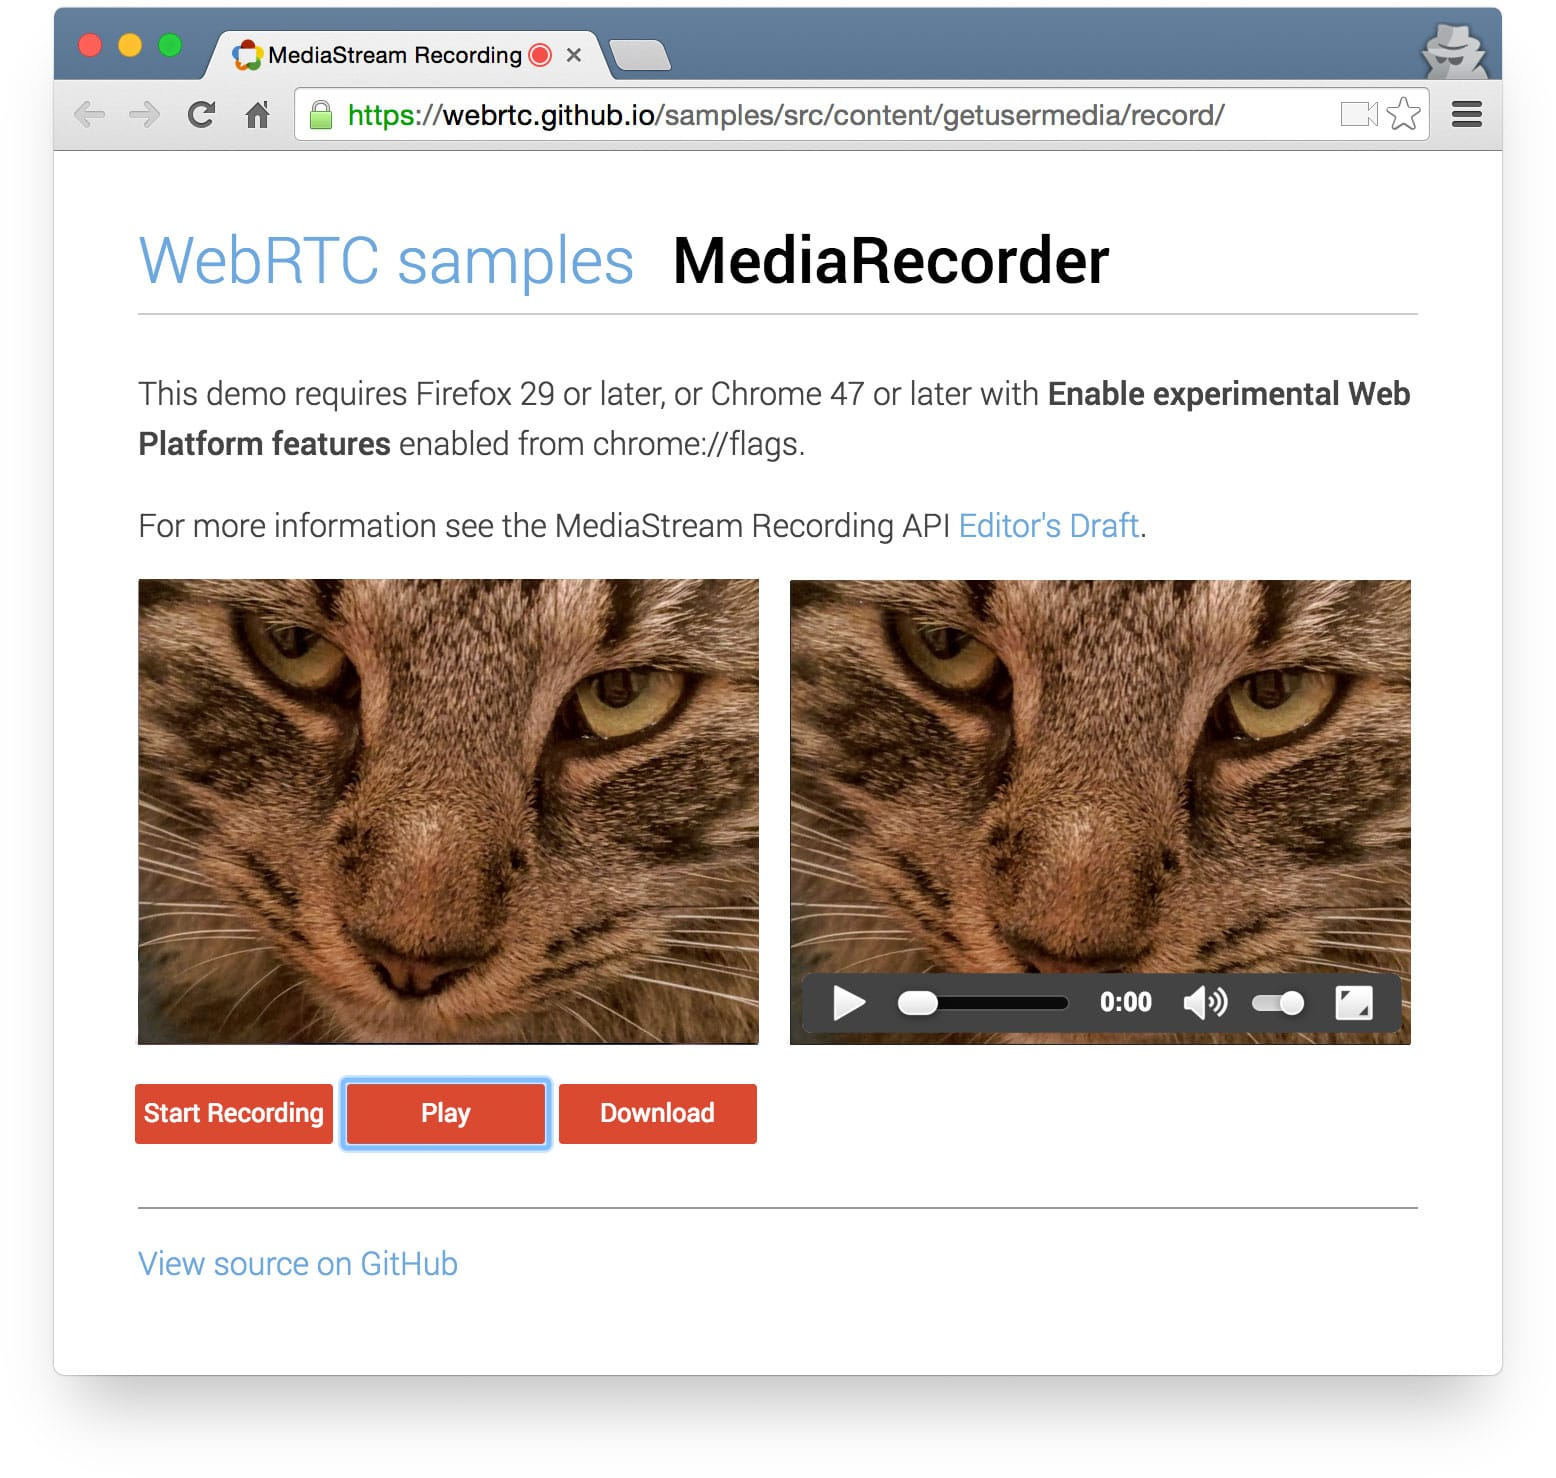 Screenshot of MediaRecorder demo on the WebRTC GitHub samples repo